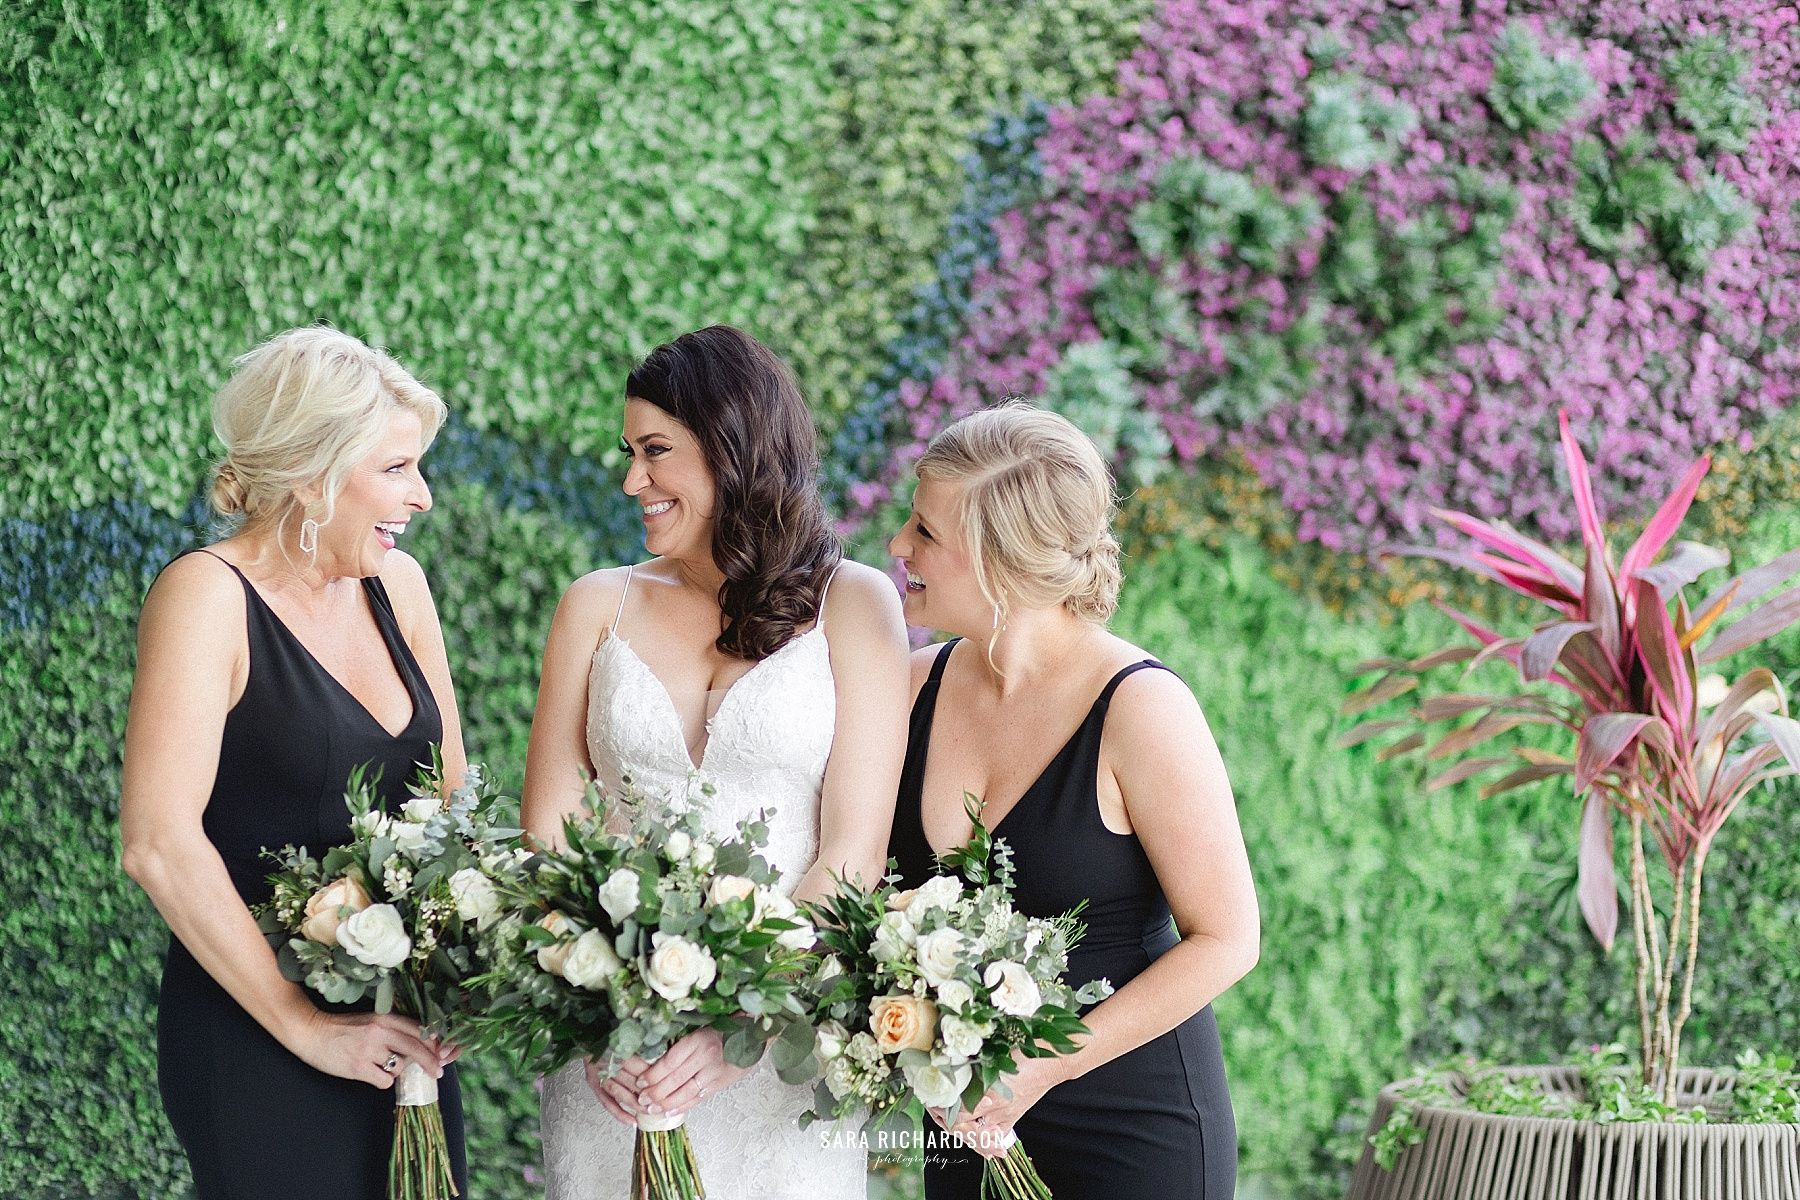 Bride with Bridesmaids having fun at the hotel where her wedding was. The wedding took place at Wedding Venue in Los Cabos, at a Hotel called LeBlanc